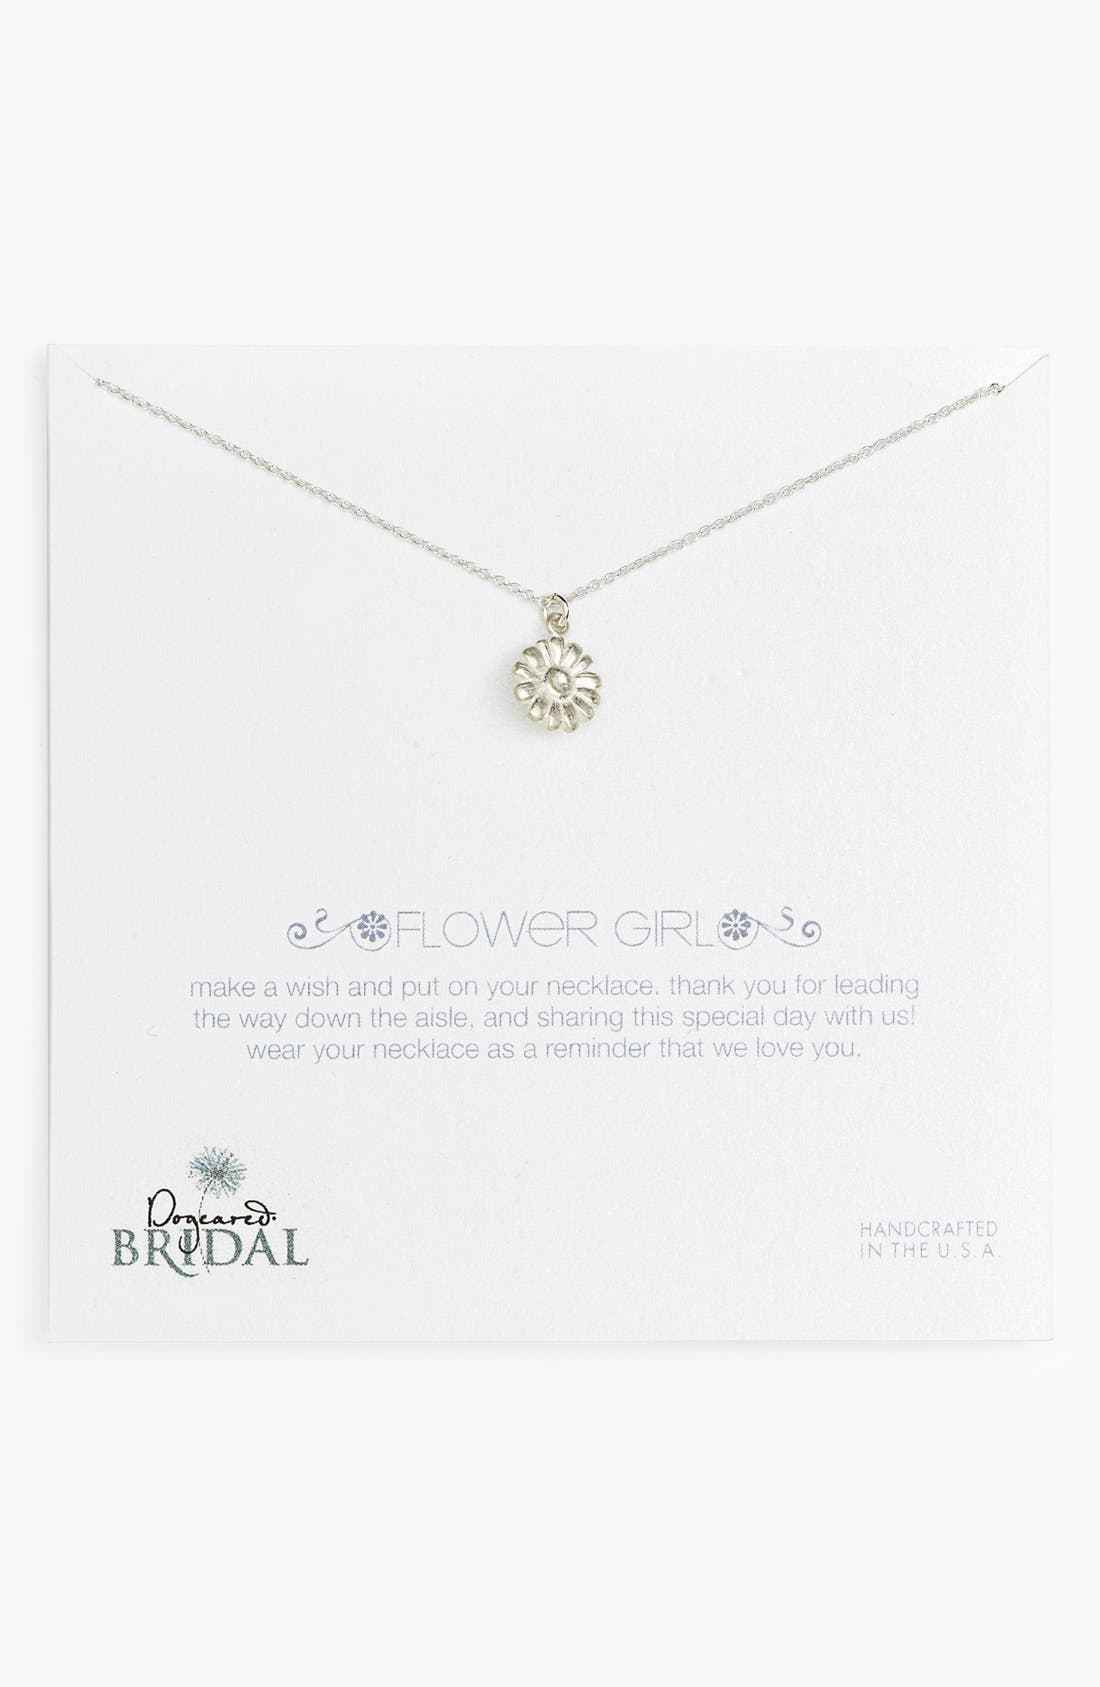 Alternate Image 1 Selected - Dogeared 'Flower Girl' Pendant Necklace (Nordstrom Exclusive)